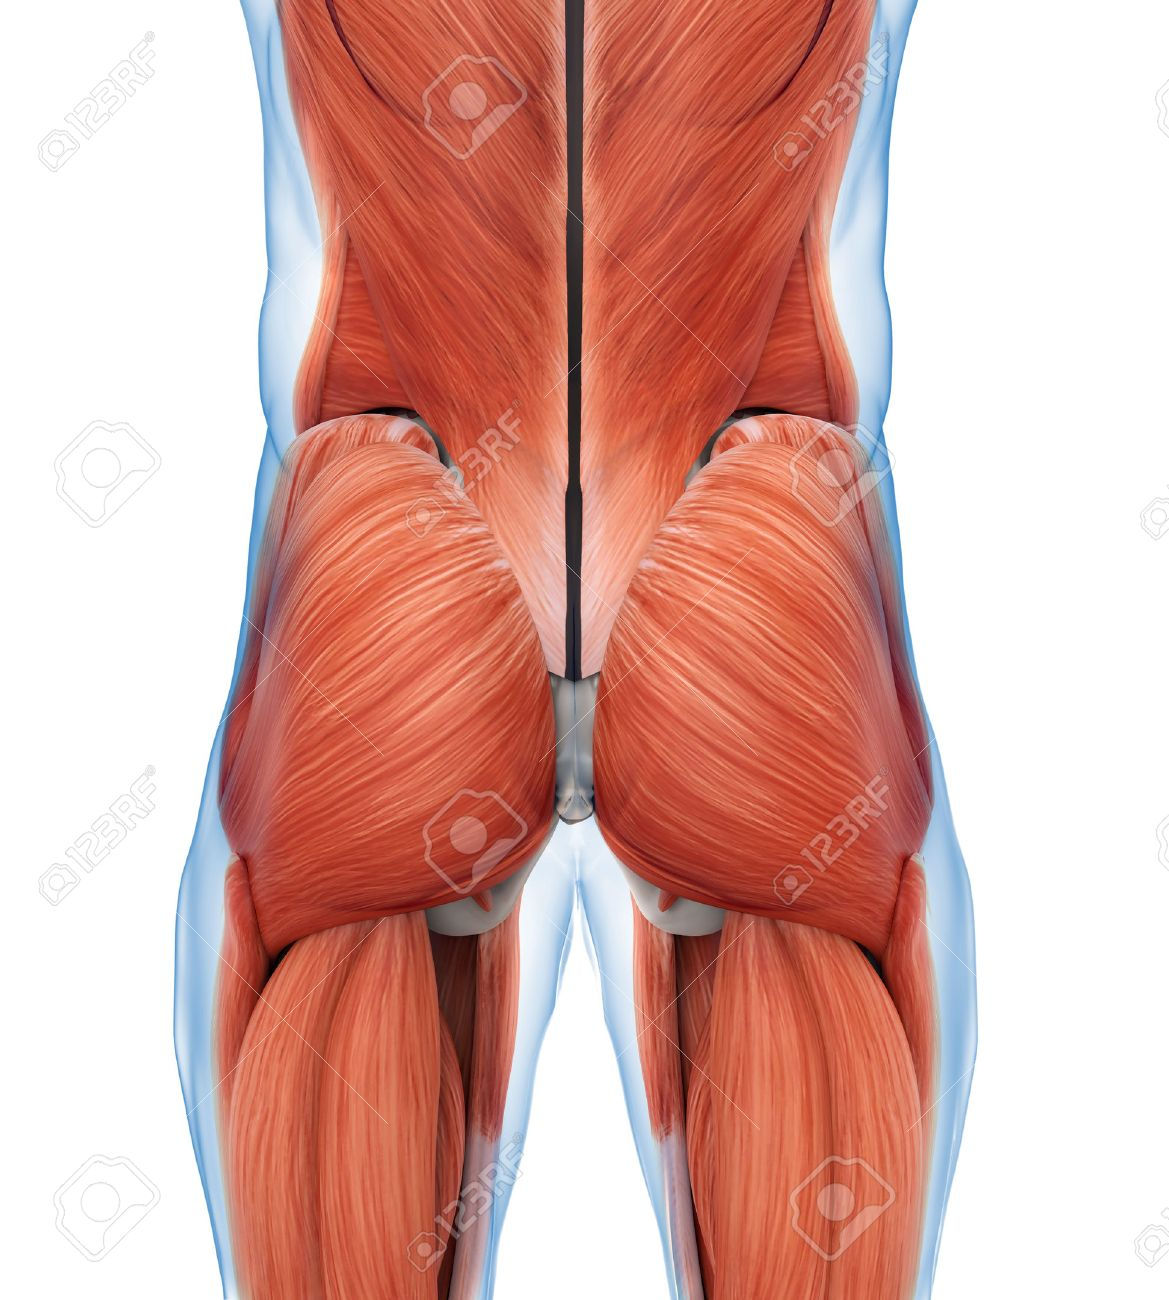 Buttock Muscles Anatomy Stock Photo, Picture And Royalty Free Image ...